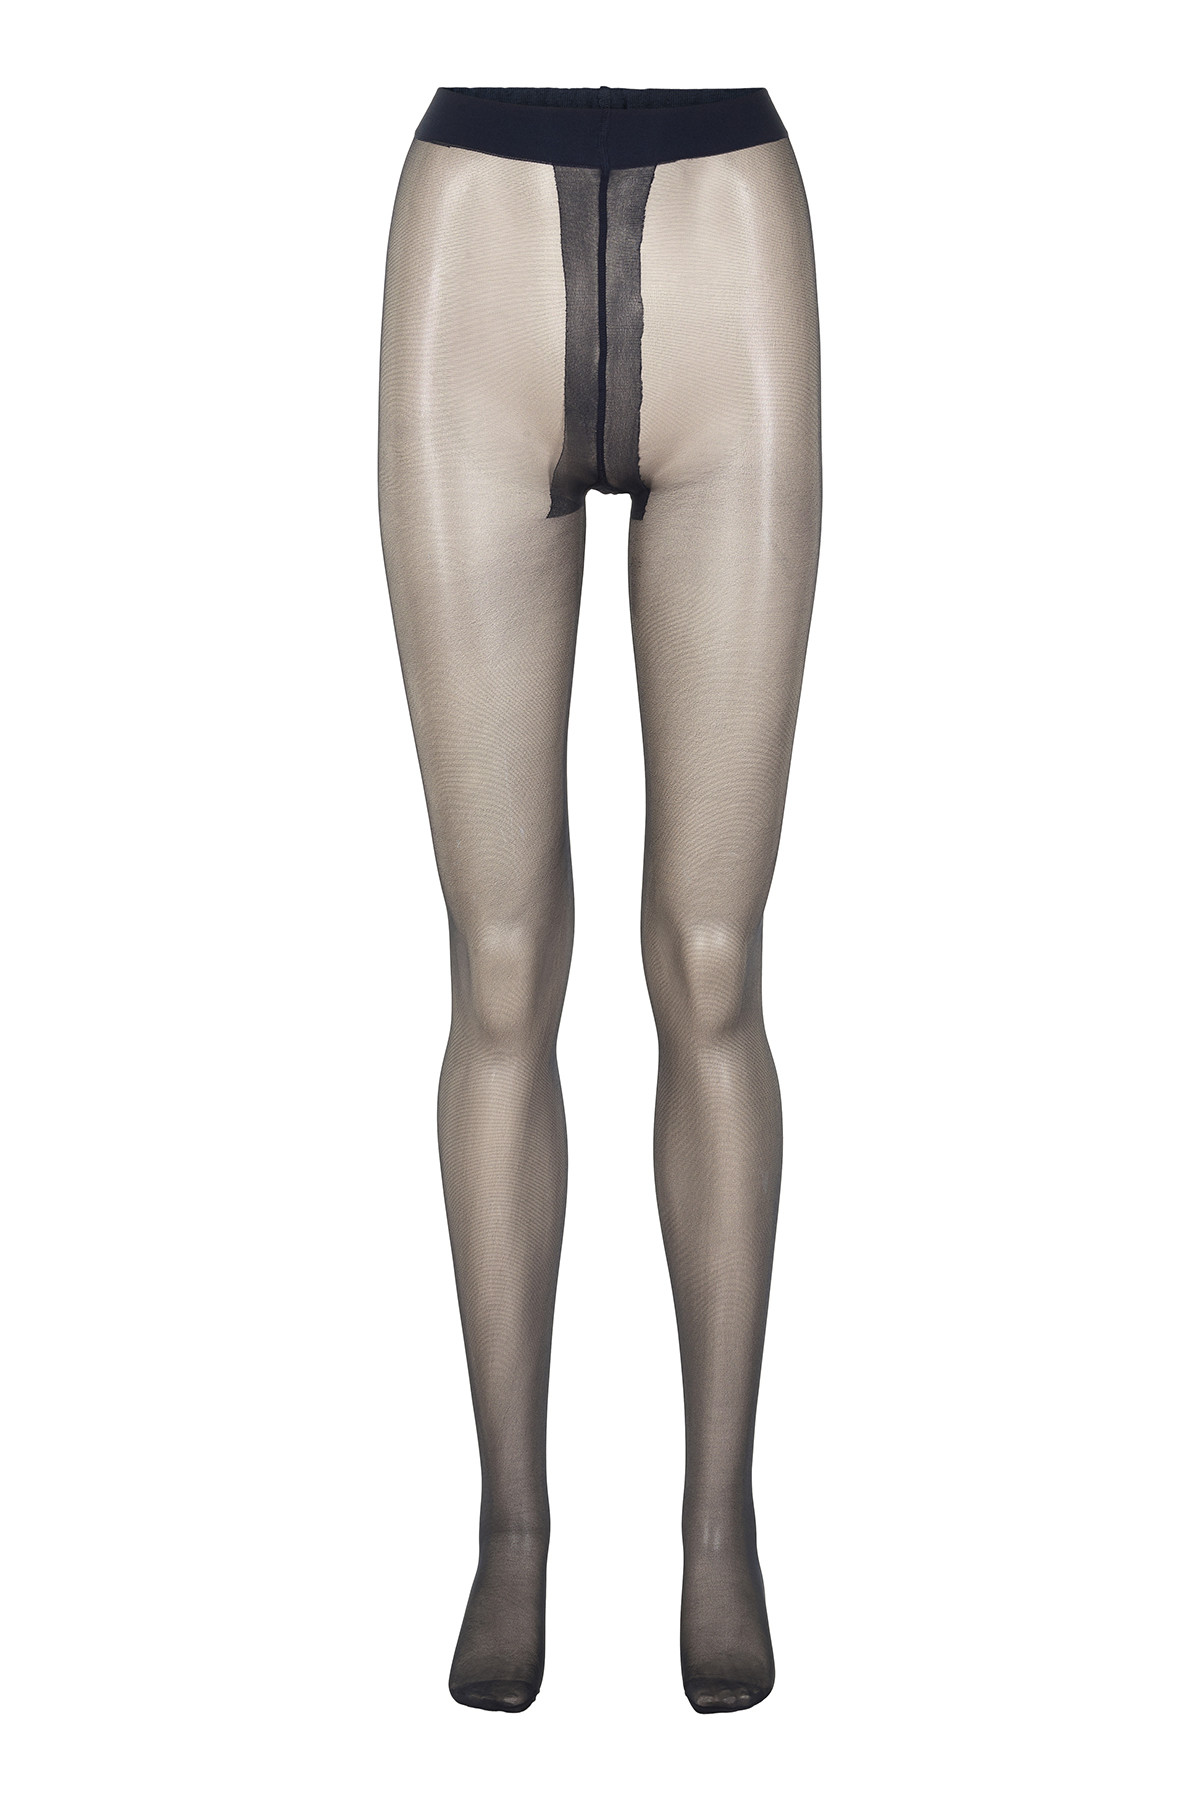 DECOY SILK LOOK 20DEN TIGHTS 16670 2347